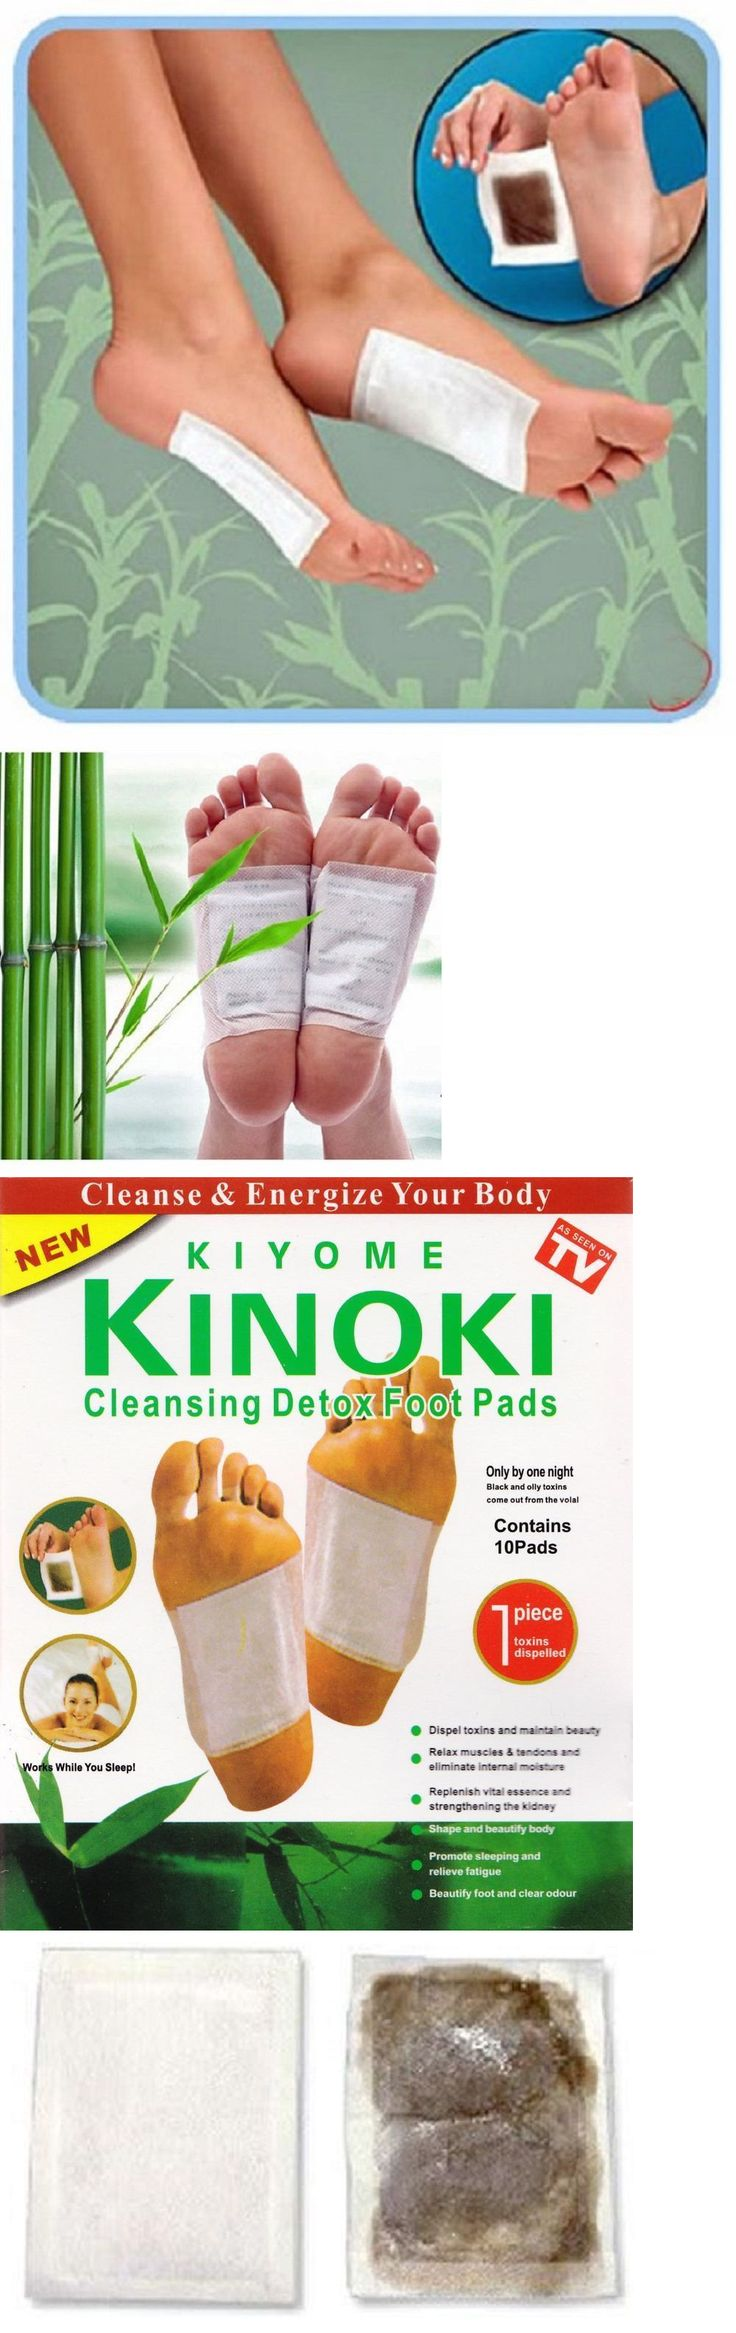 Detox Pads: Detox Foot Pads By Kinoki Kiyome For Cleansing Feet 10 Count Box As Seen On Tv -> BUY IT NOW ONLY: $38.29 on eBay!